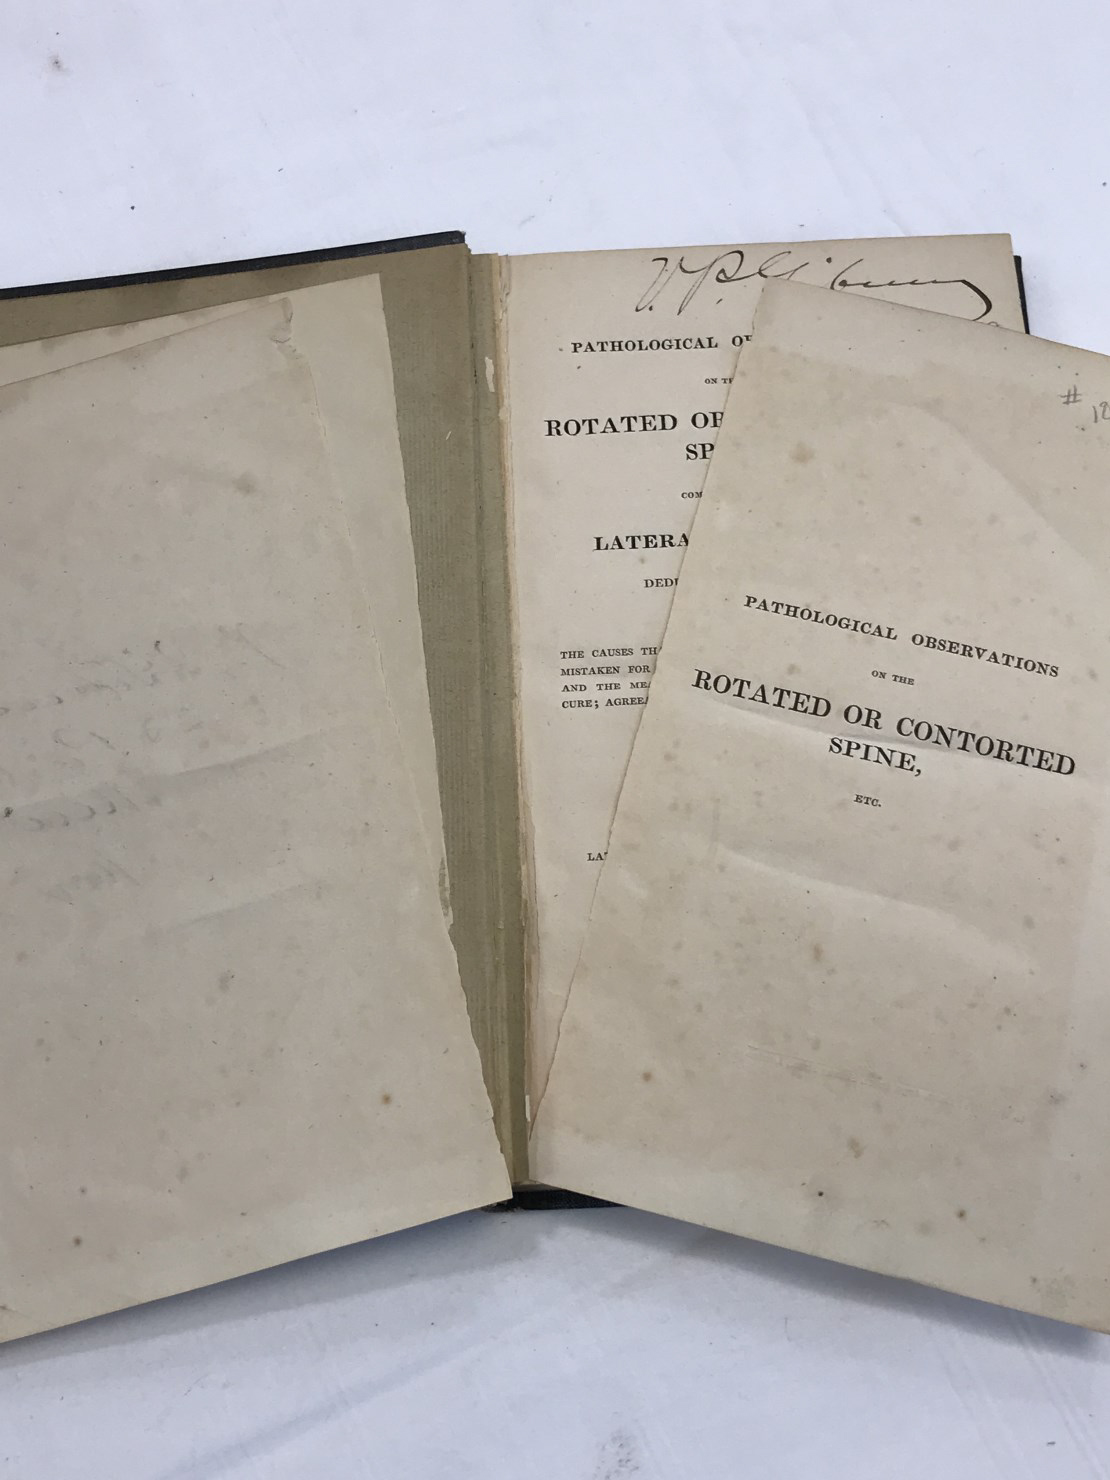 Repair needed to torn pages of Dods book